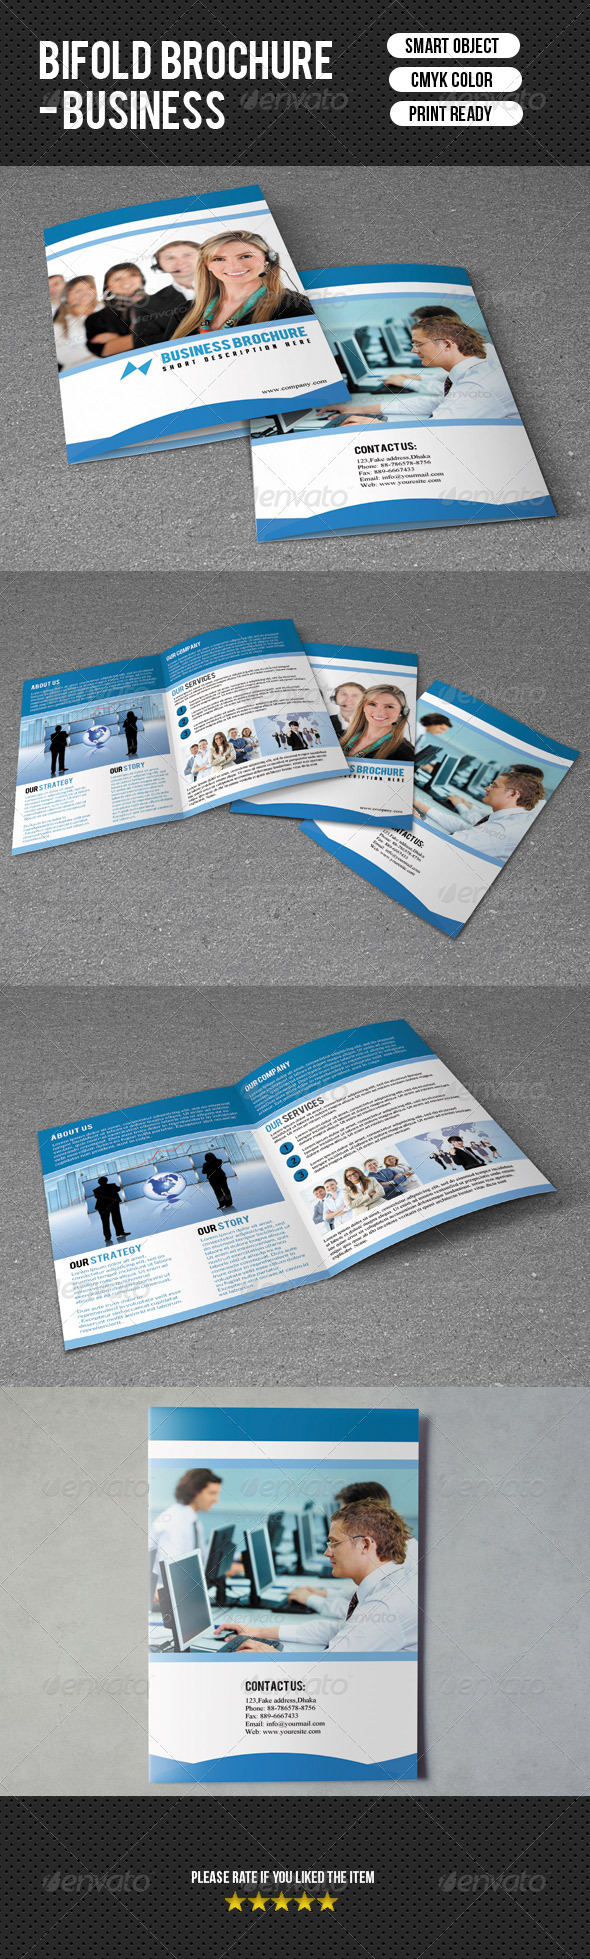 GraphicRiver Bifold Brochure-Business 7348438